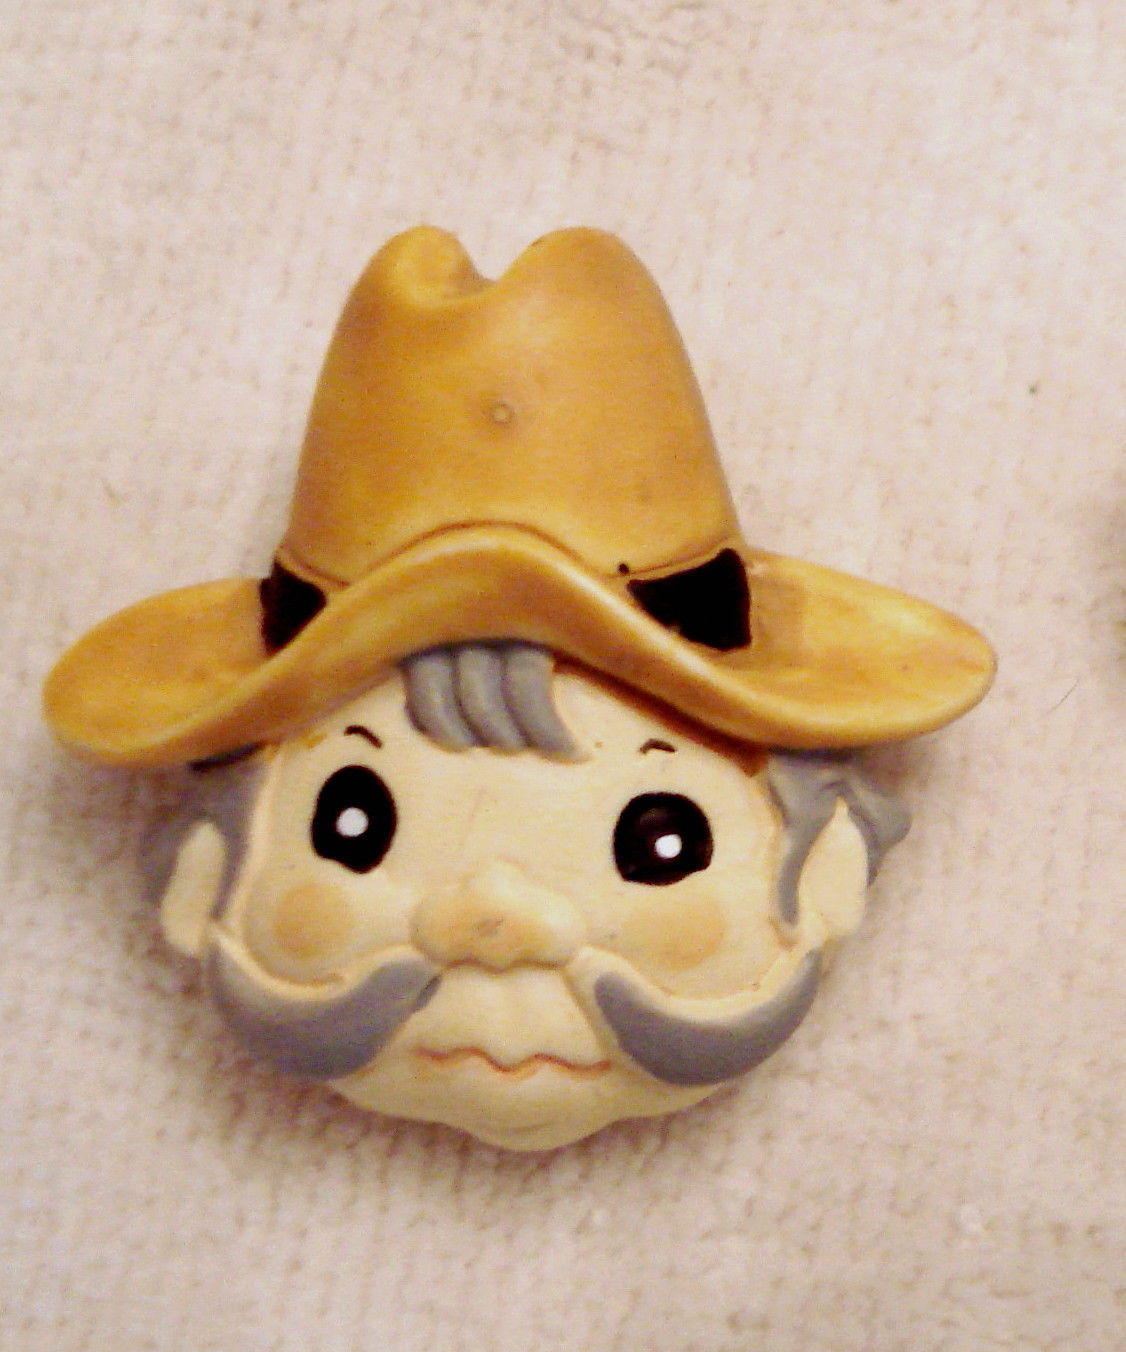 Primary image for Collectible VINTAGE NOVELTY Lapel Pin PROSPECTOR GOLD MINER COWBOY Plastic